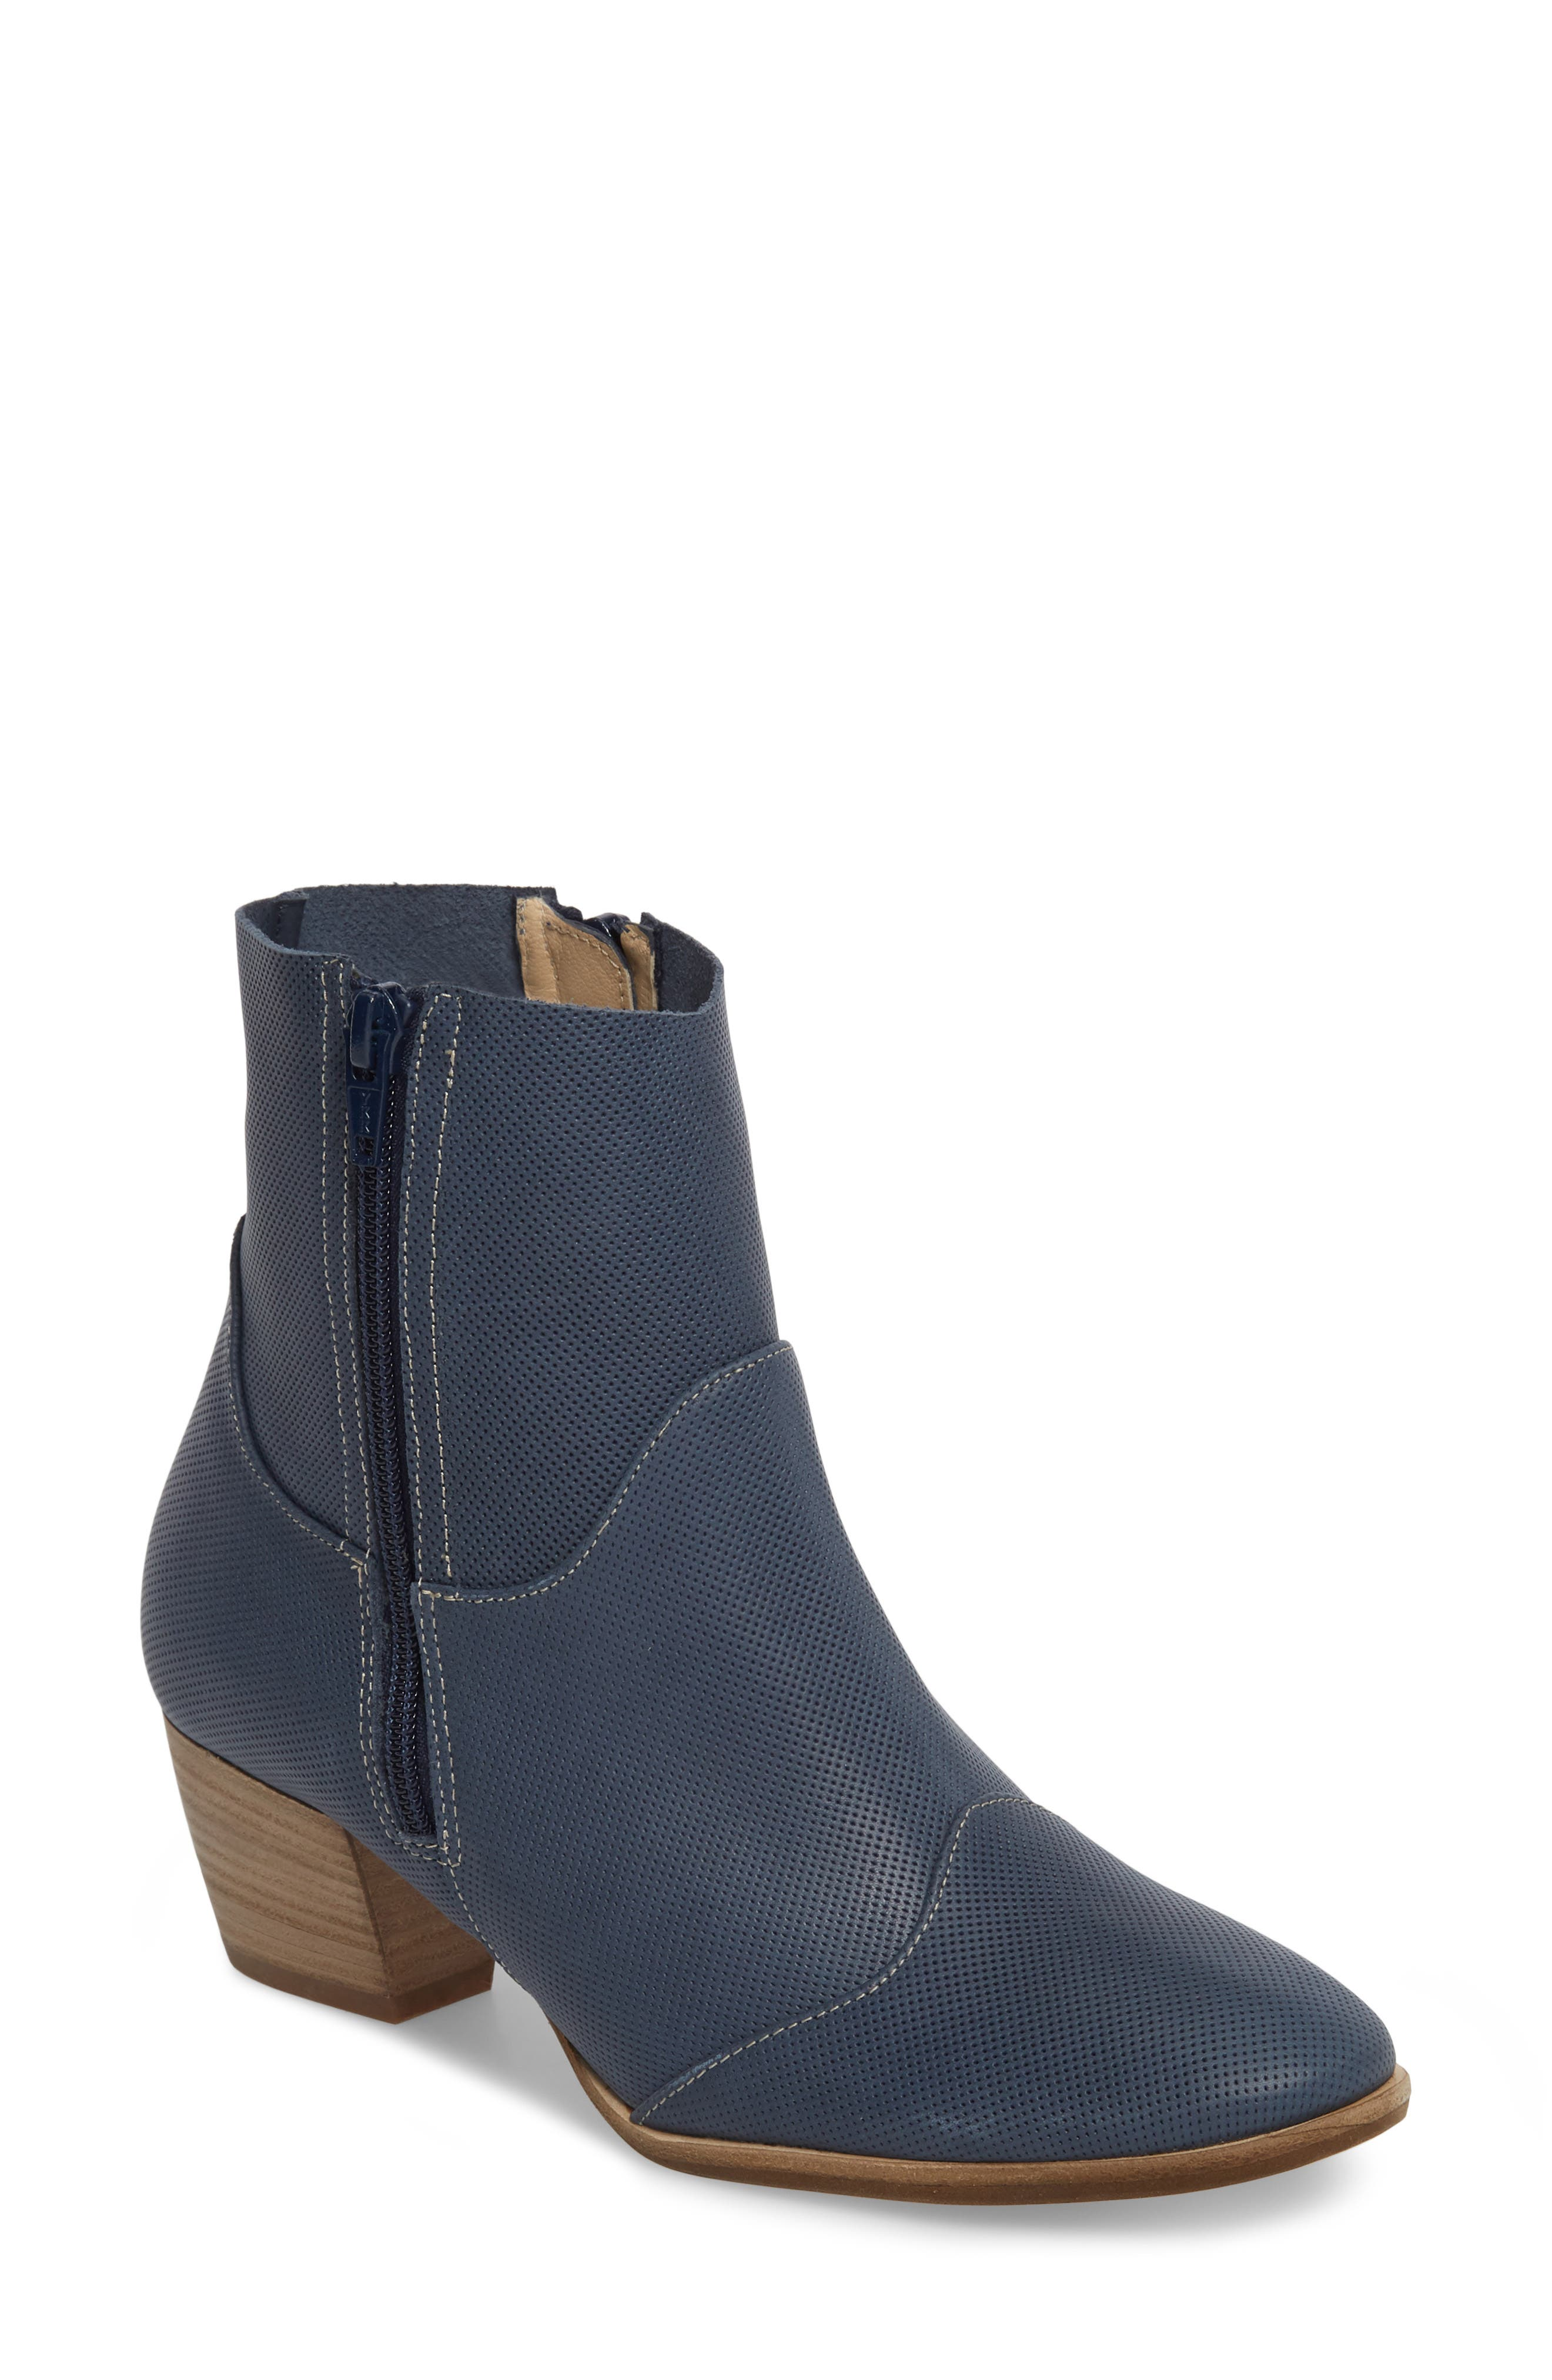 Robin Bootie,                             Main thumbnail 1, color,                             Blue Leather